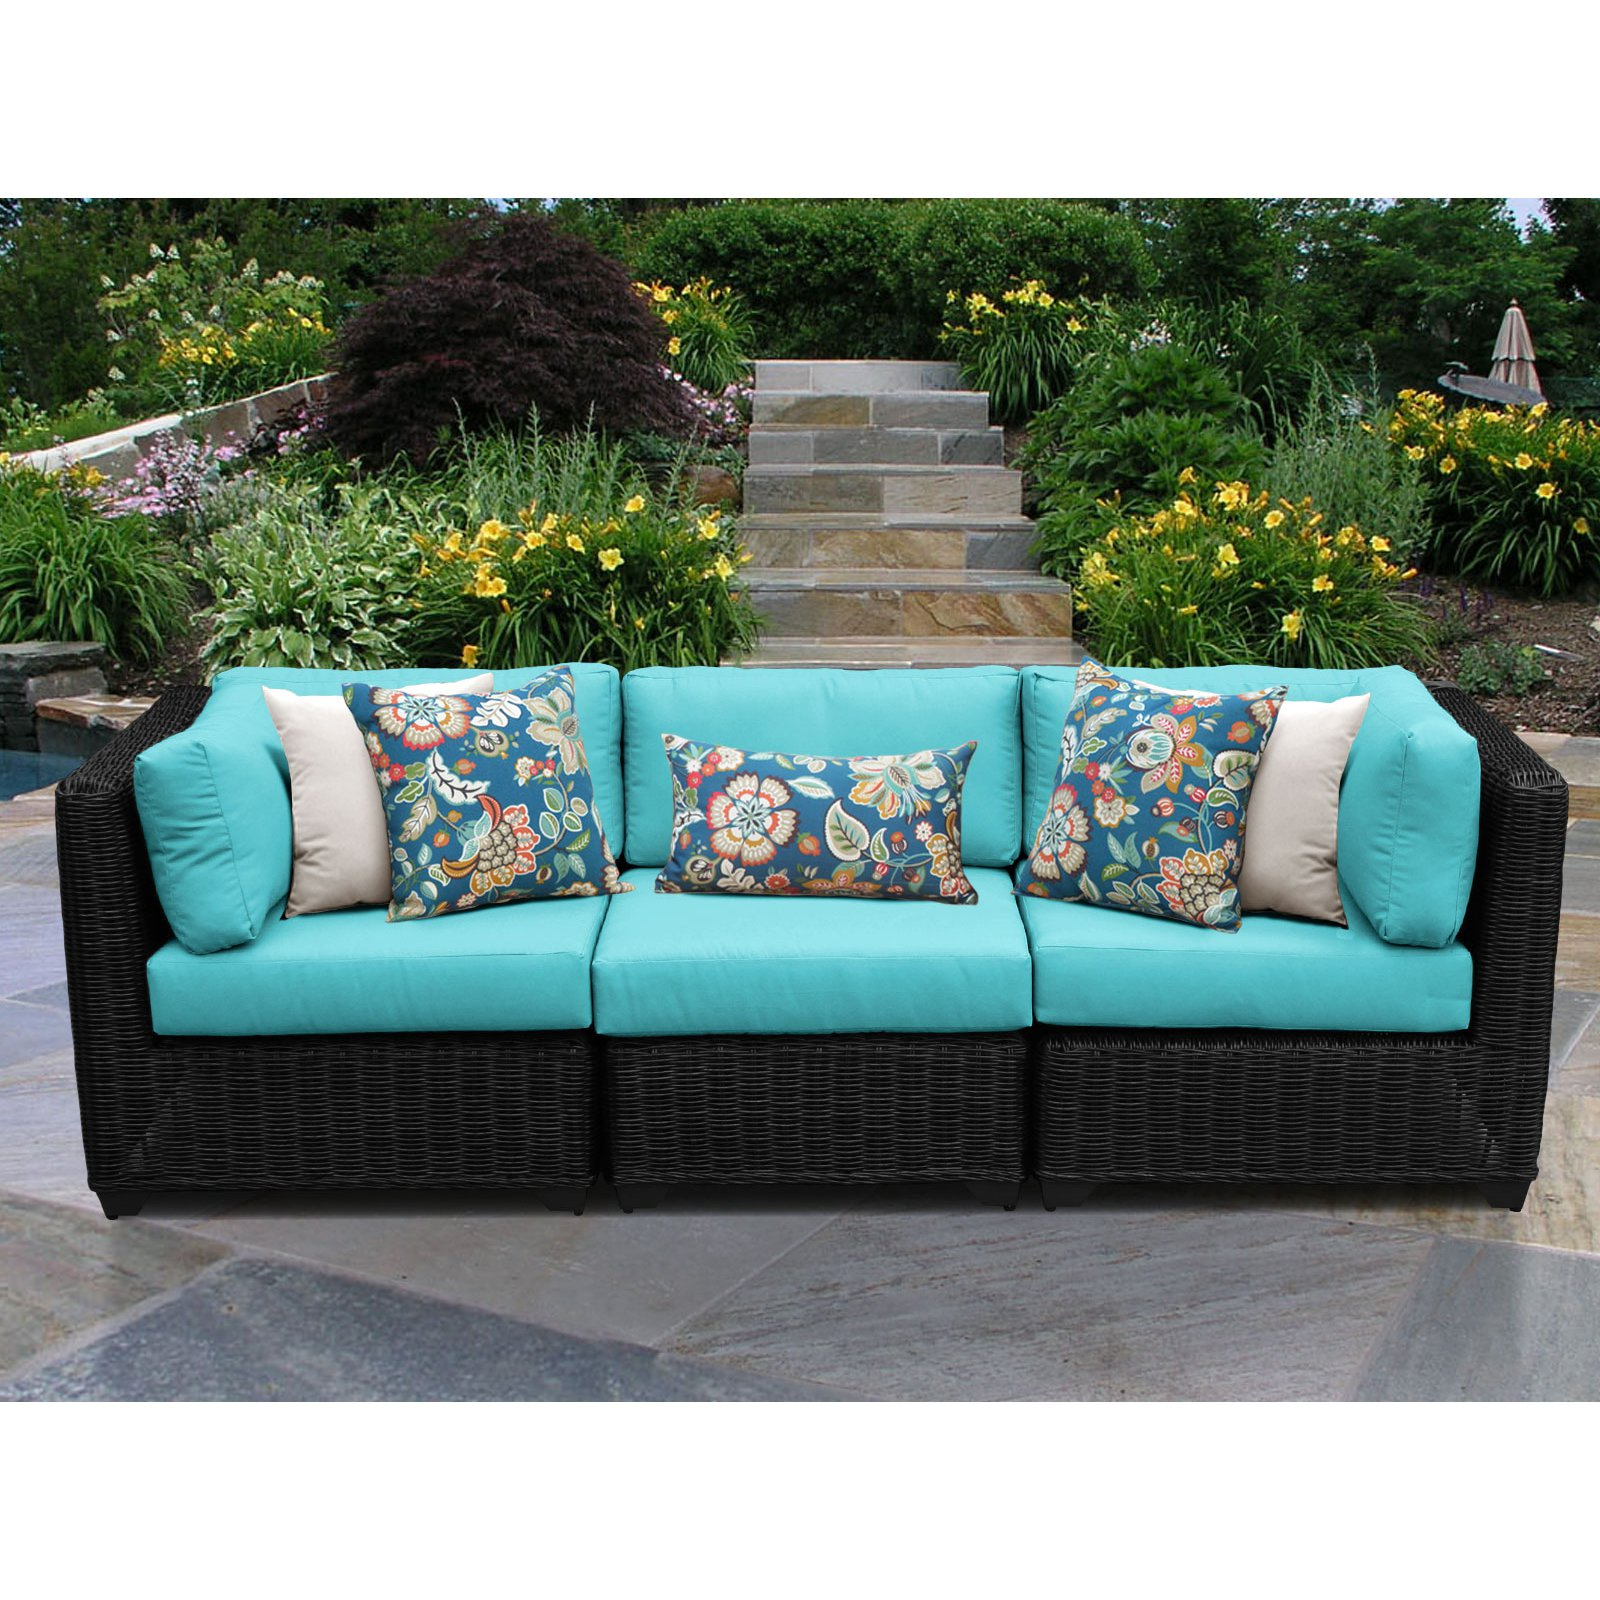 Mcmanis Patio Sofas With Cushion Regarding Famous Tk Classics Venice 3 Piece Outdoor Wicker Patio Conversation (View 20 of 20)